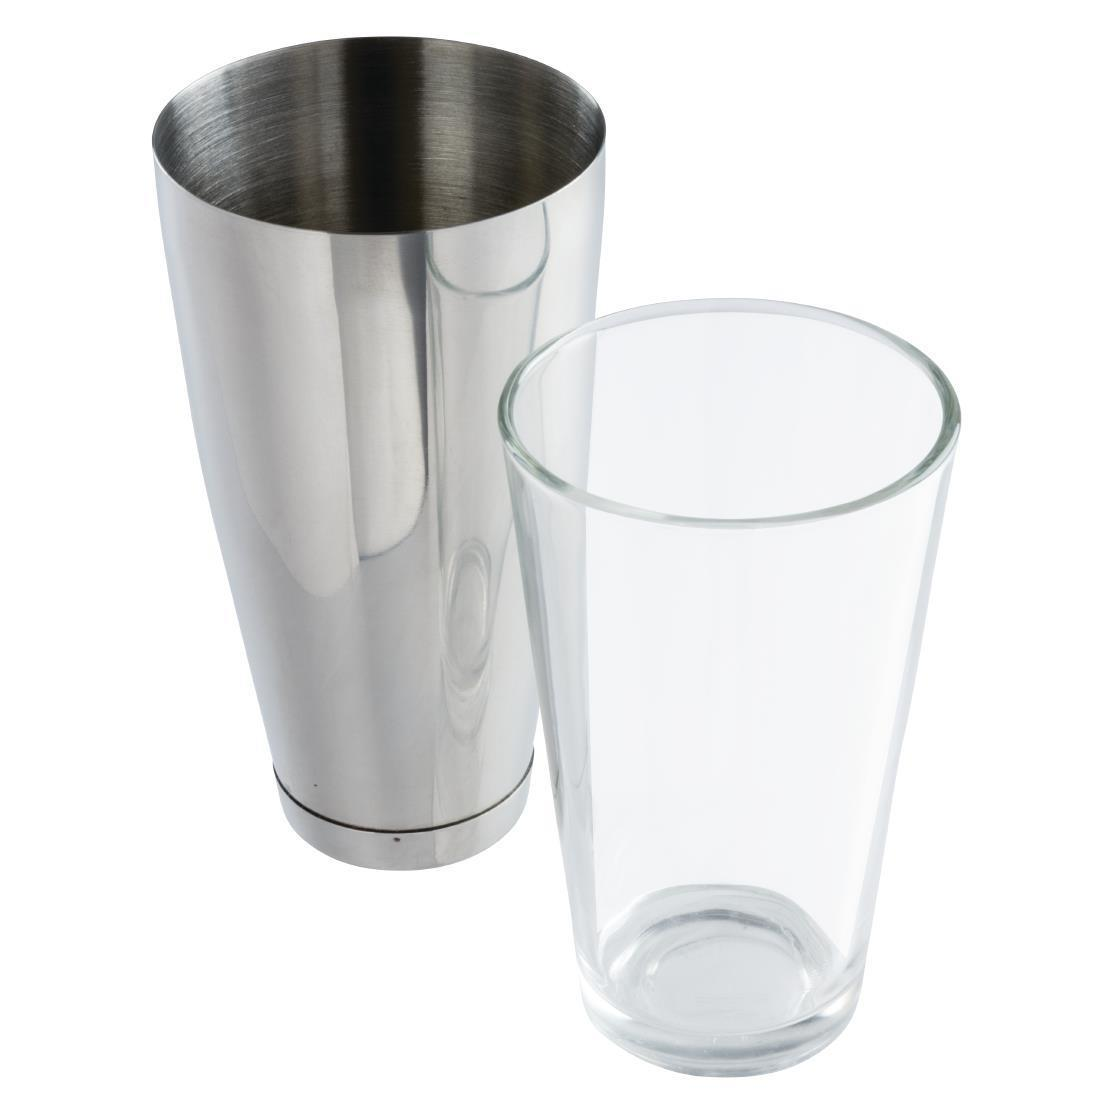 APS Boston Shaker and Glass - Each - S766